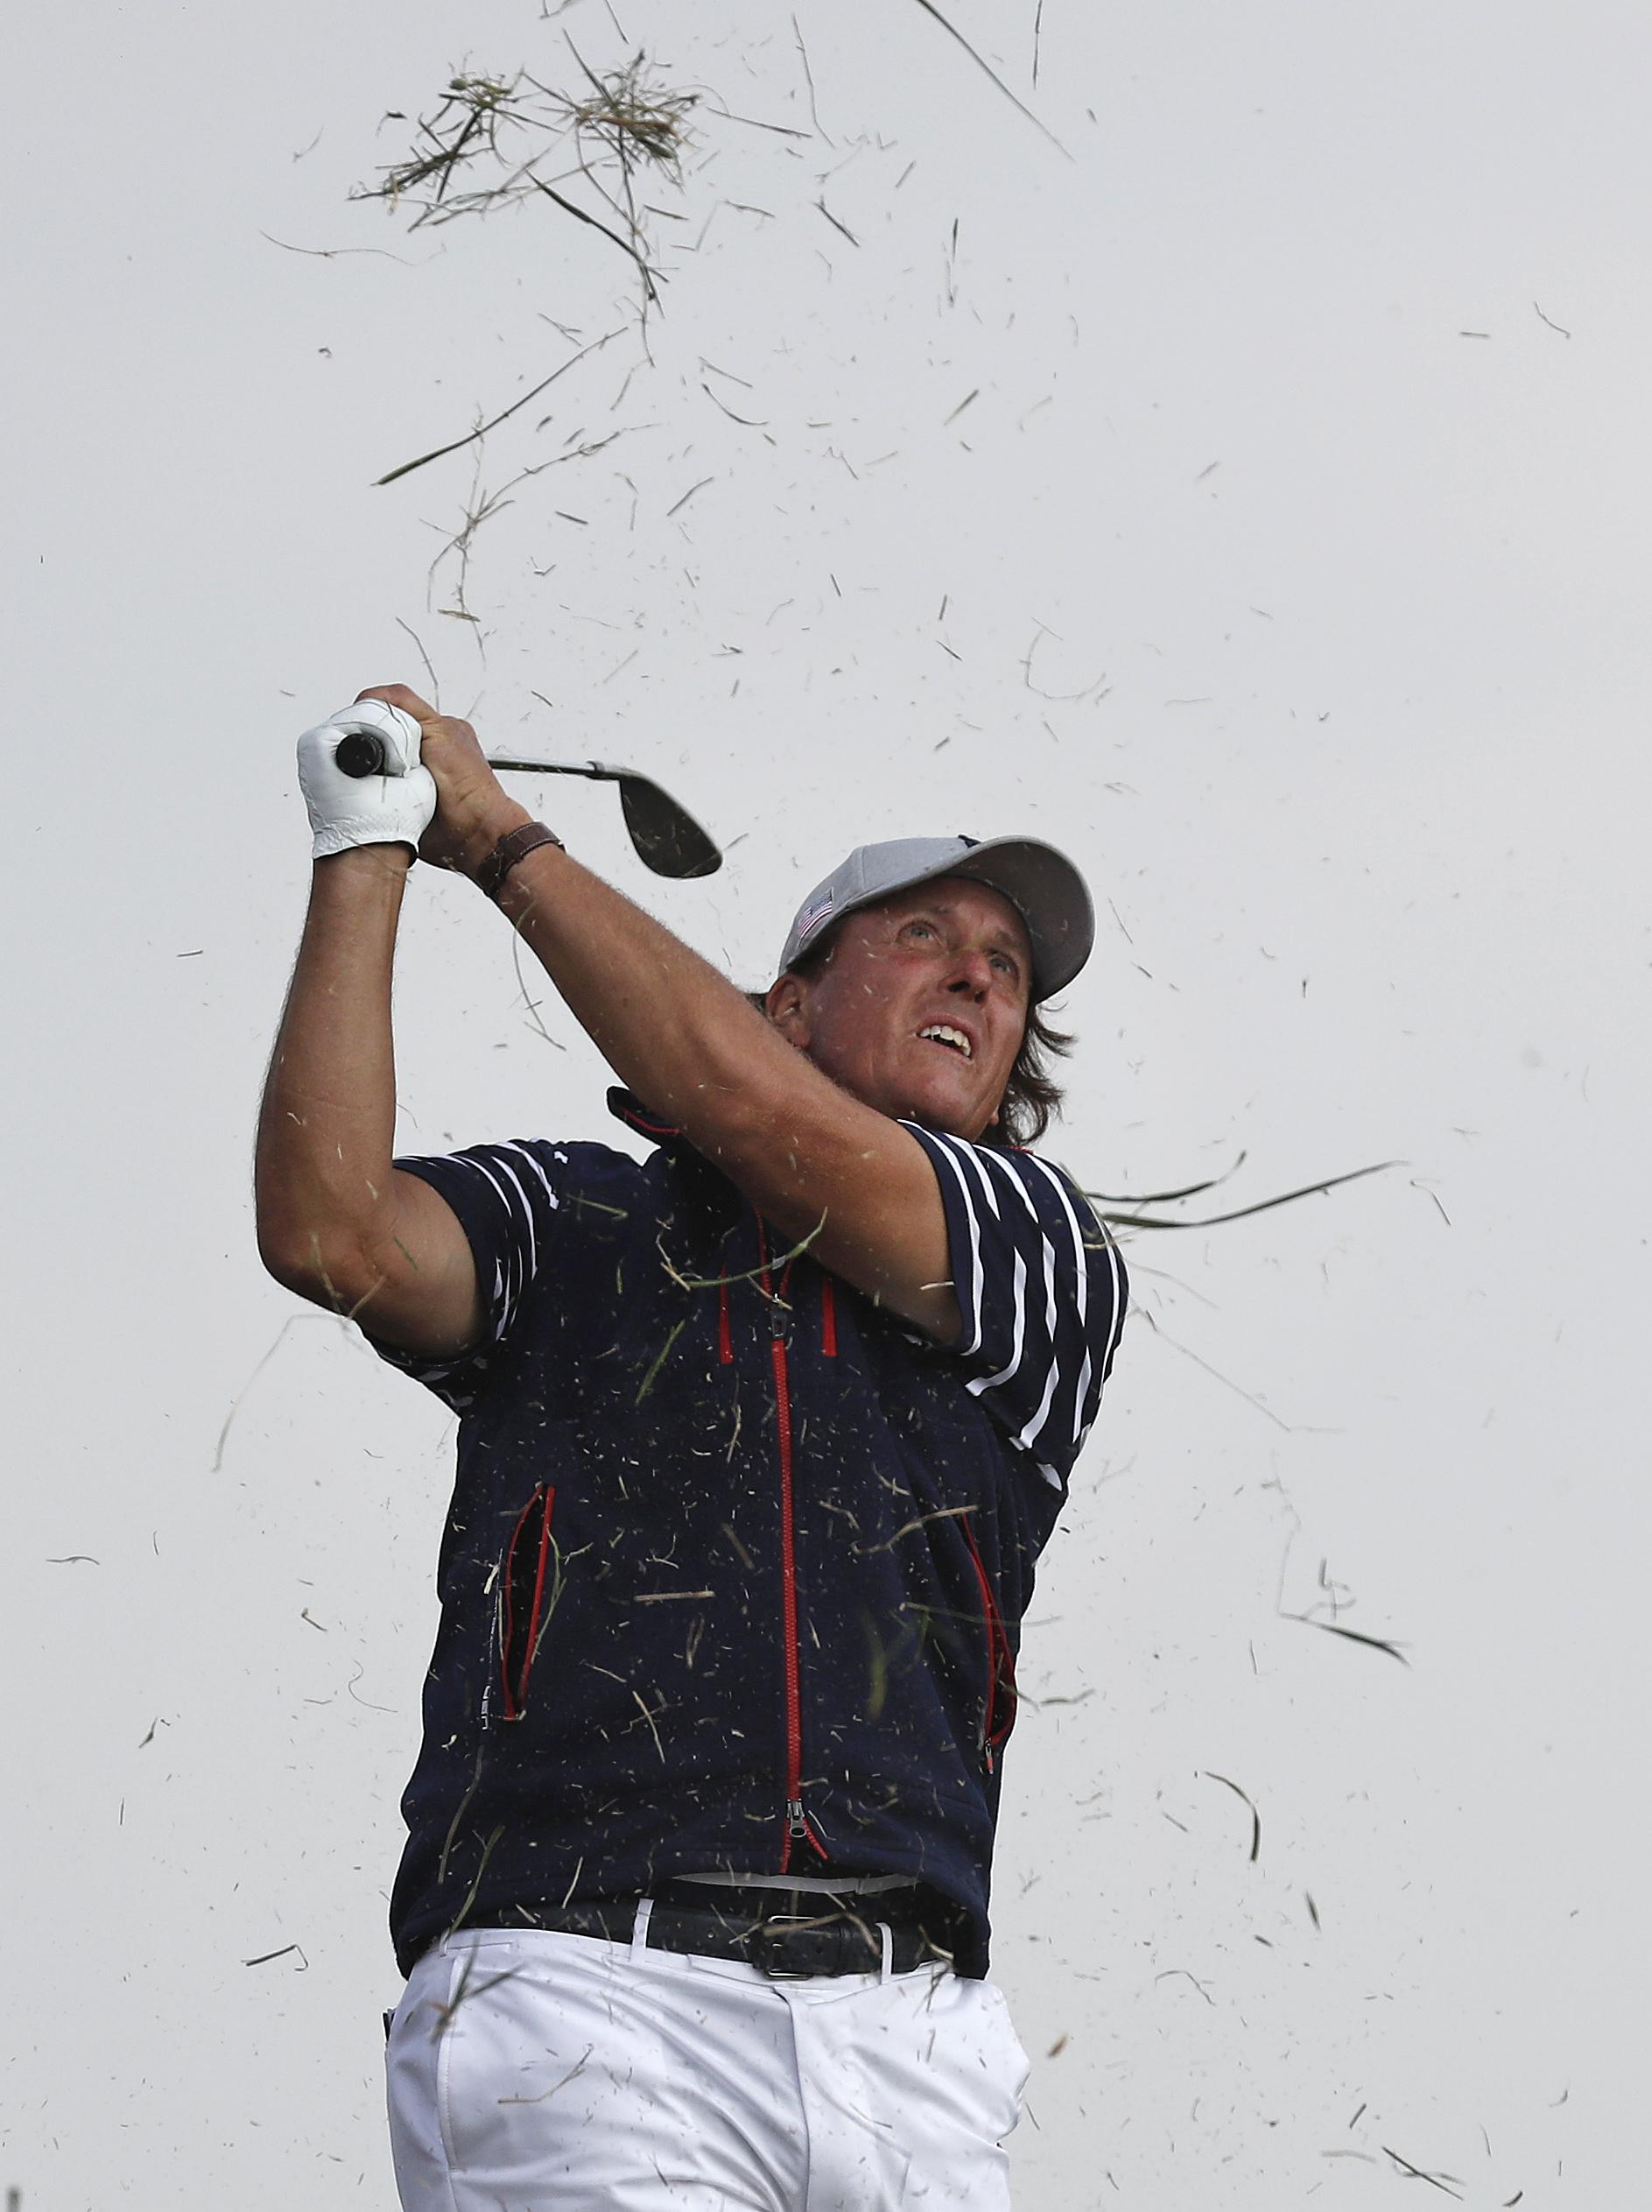 Furyk decided to leave out Mickelson for the entirety of the Saturday sessions